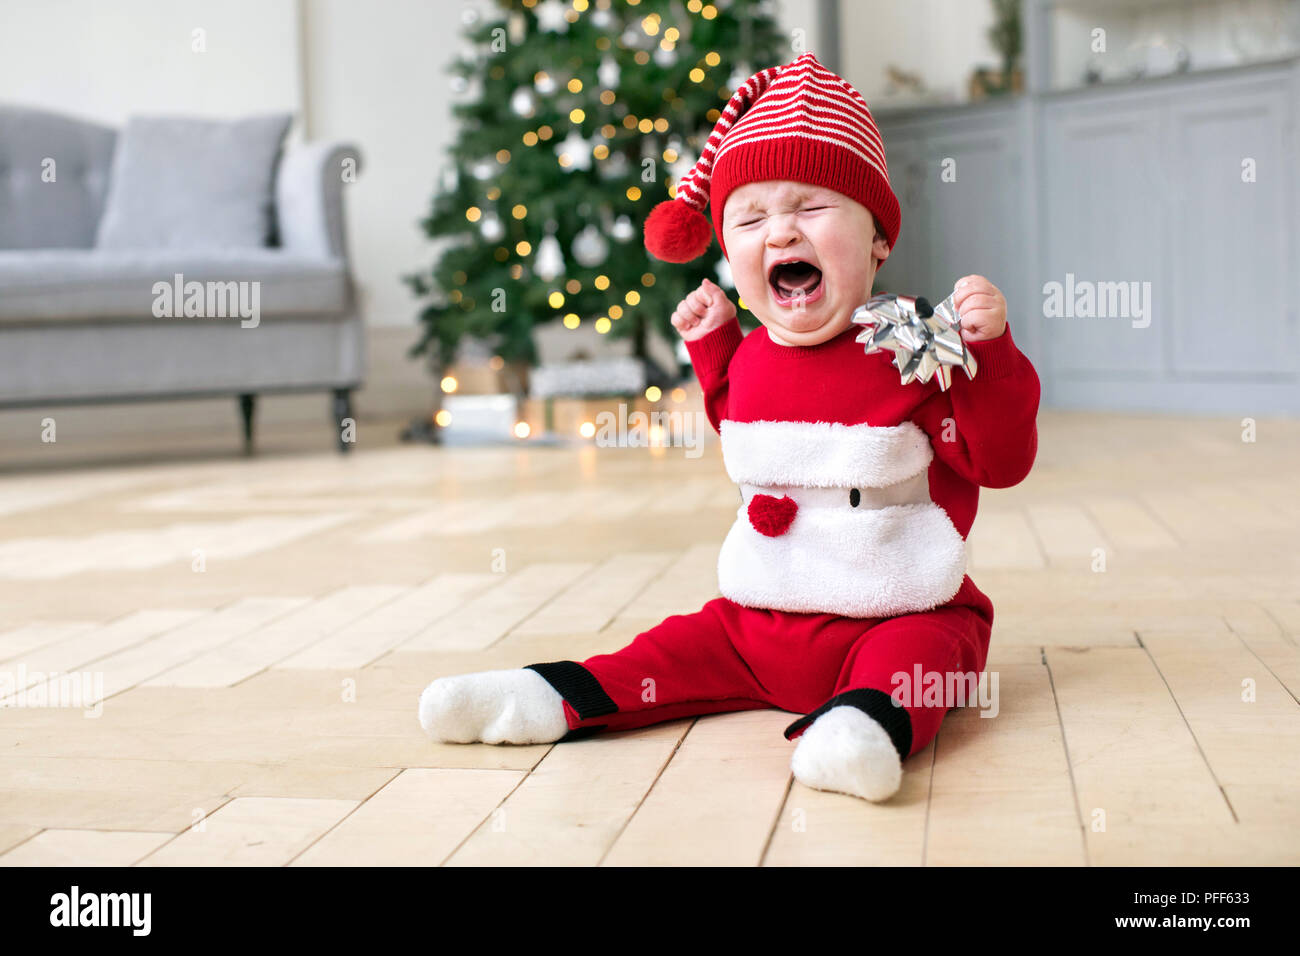 Baby in Cristmas costume crying on floor Stock Photo